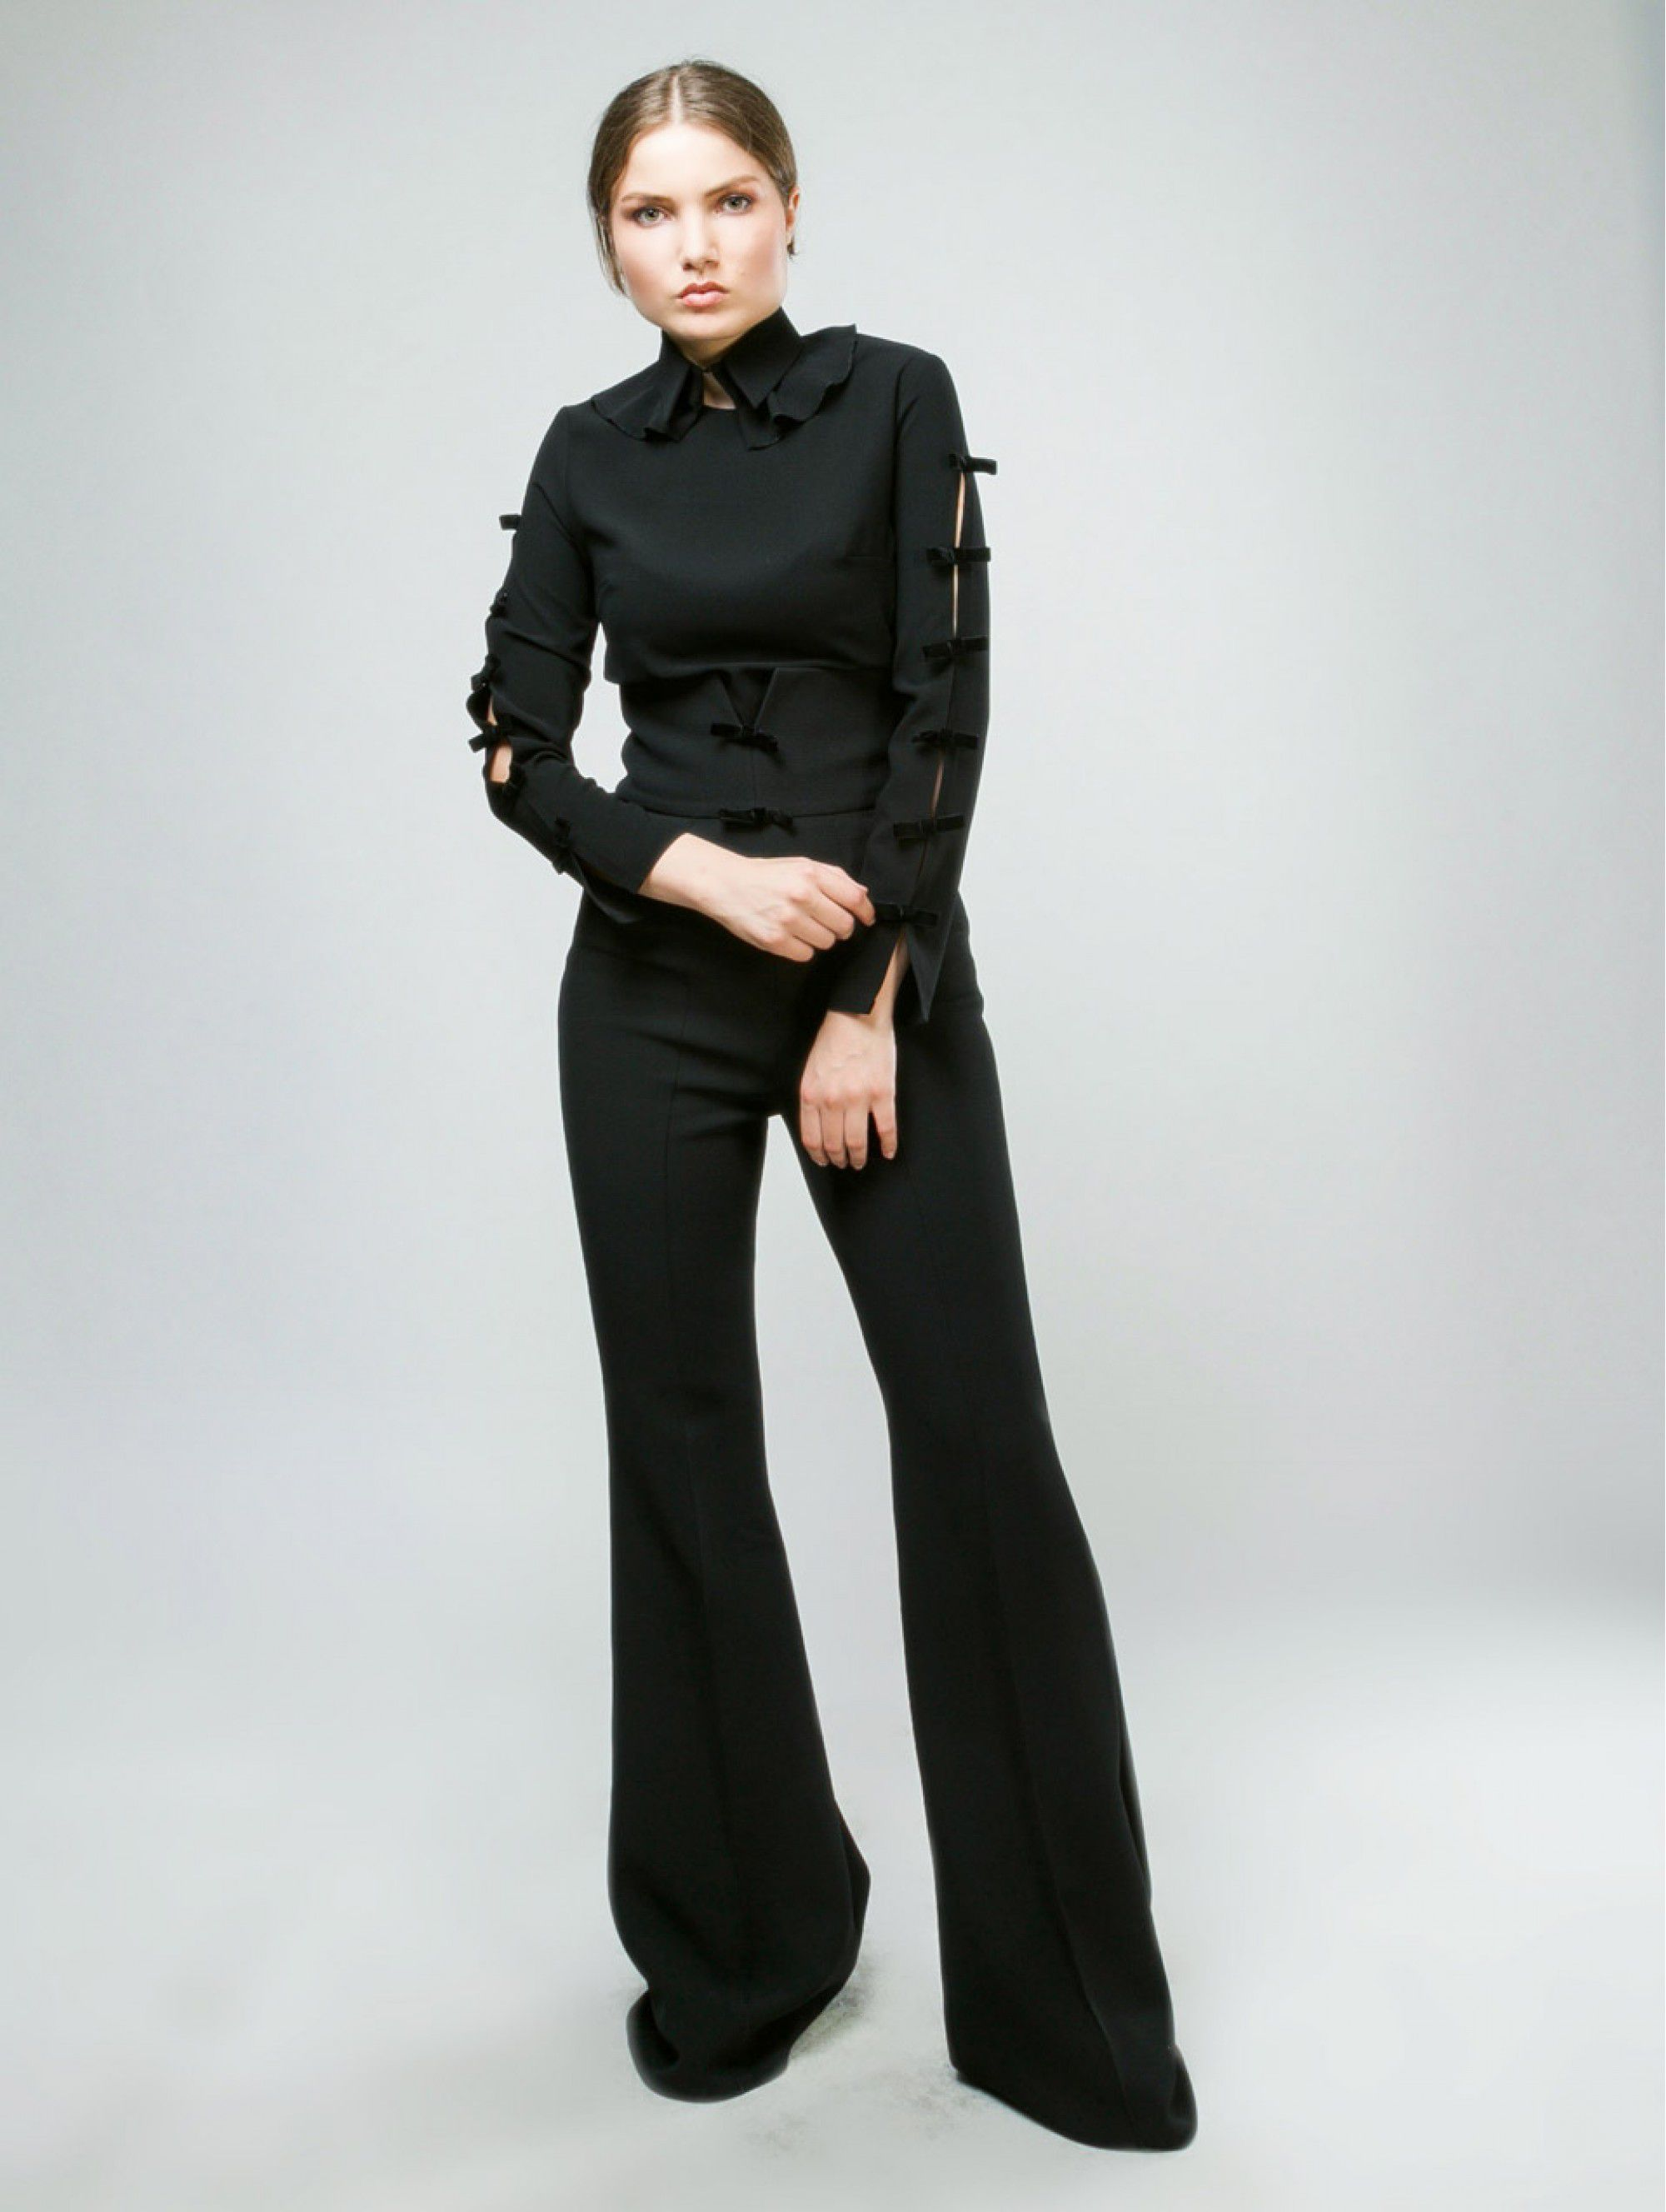 Maleone Black Shirt with Bows and Collar